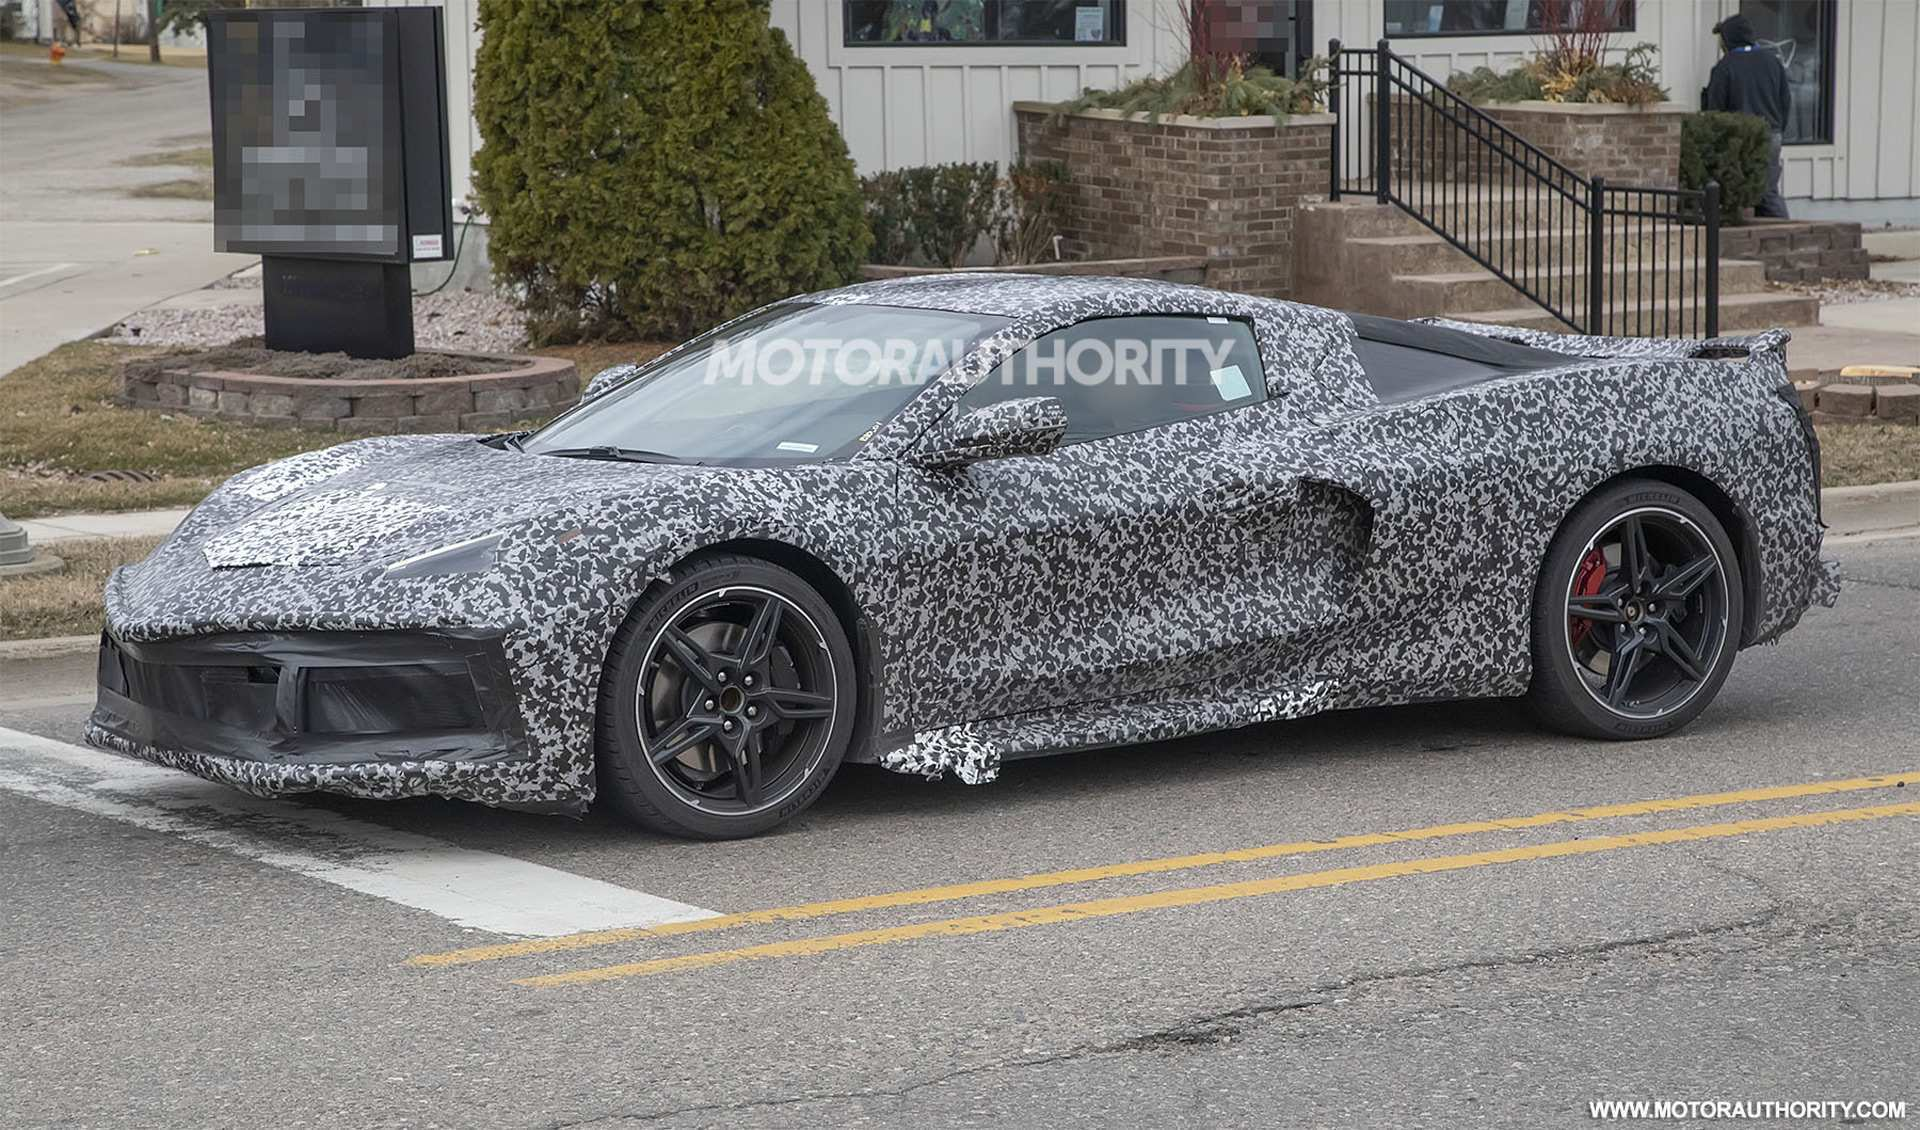 77 All New 2020 Chevy Corvette Zora Zr1 Reviews